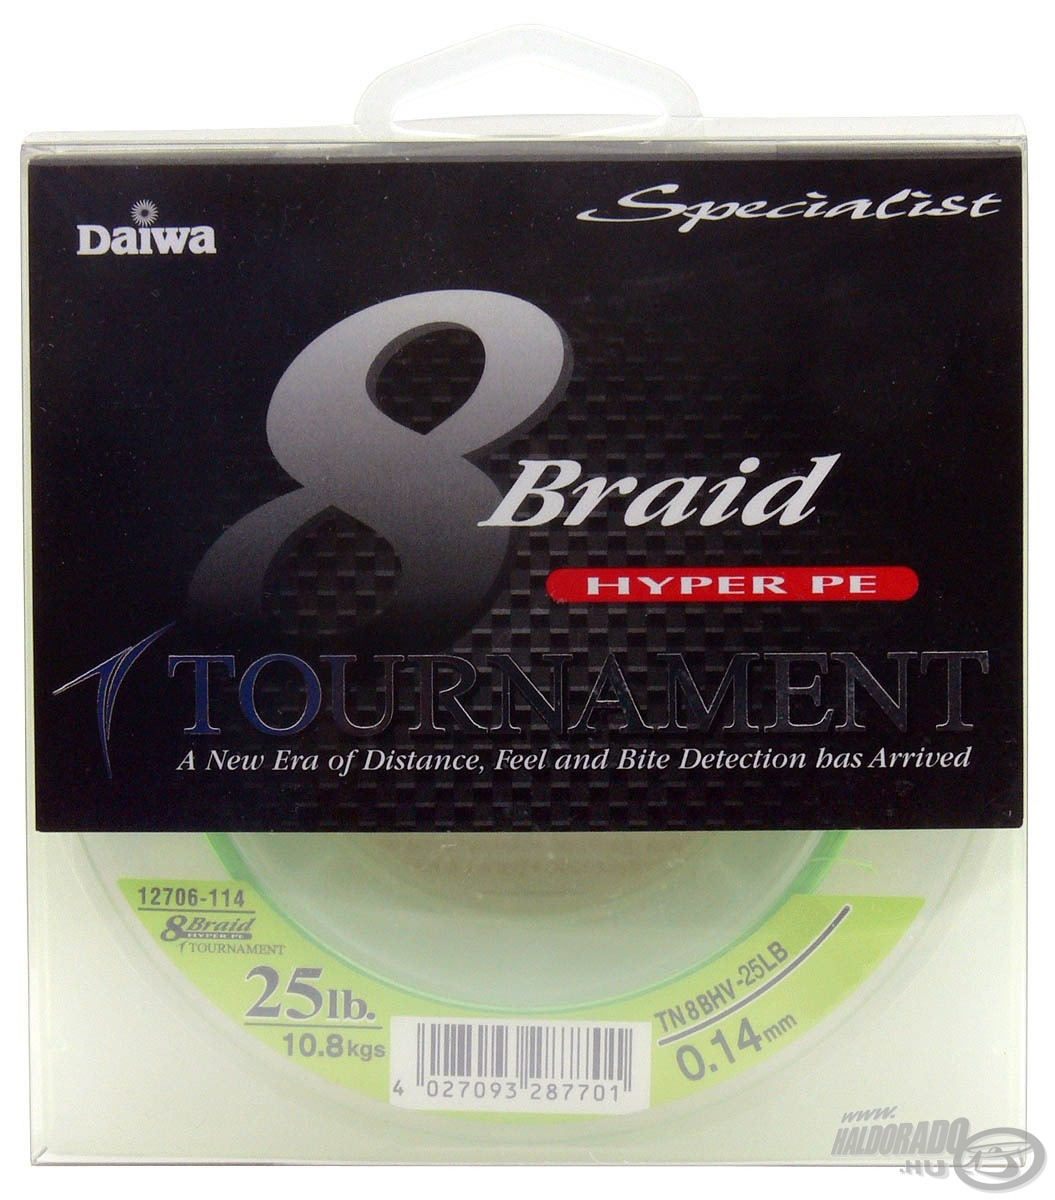 DAIWA, Tournament, 8X, Braid, neon, z�ld, 0,12, mm, -, 135, m 11990, helyett, 10490Ft